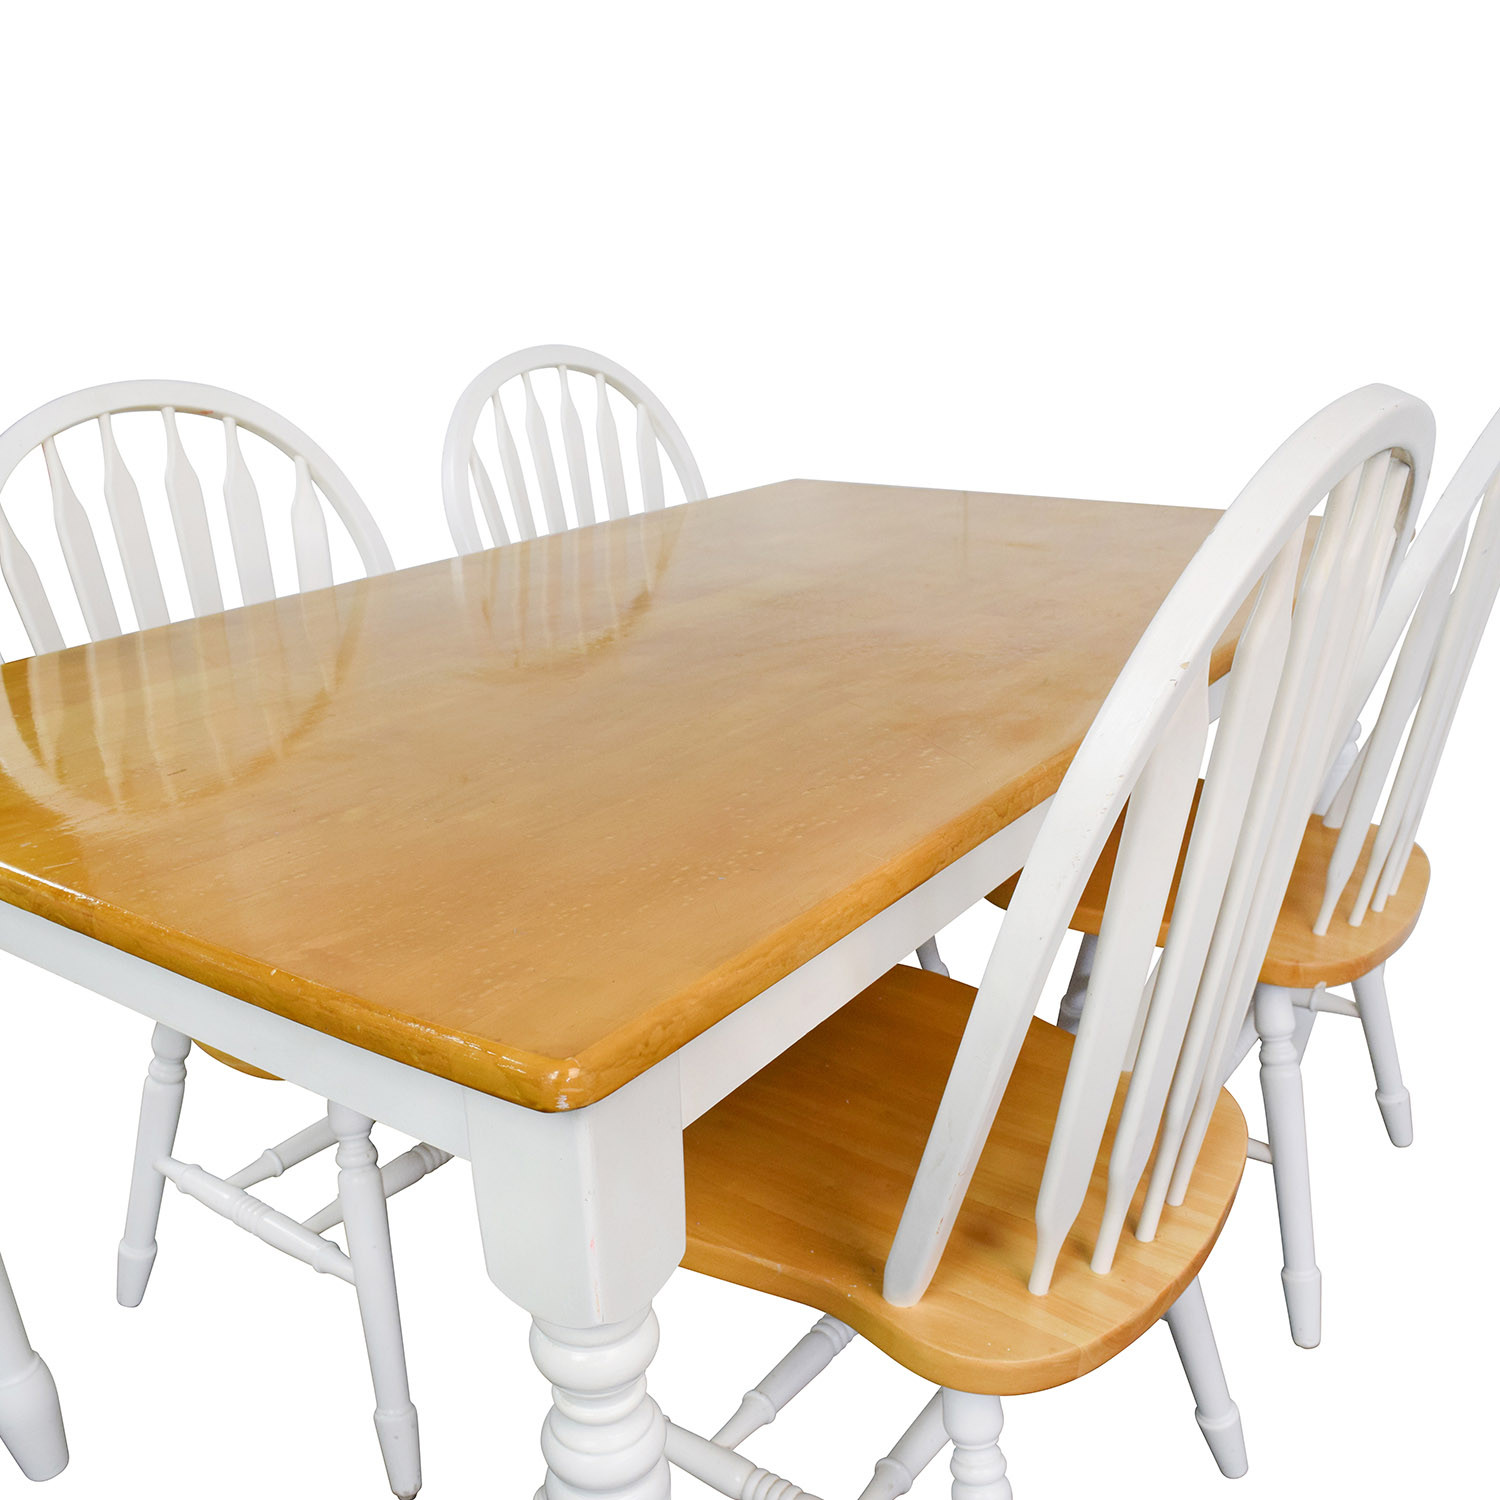 Best ideas about Wood Dining Table Set . Save or Pin OFF White and Natural Wood Color Dining set Tables Now.